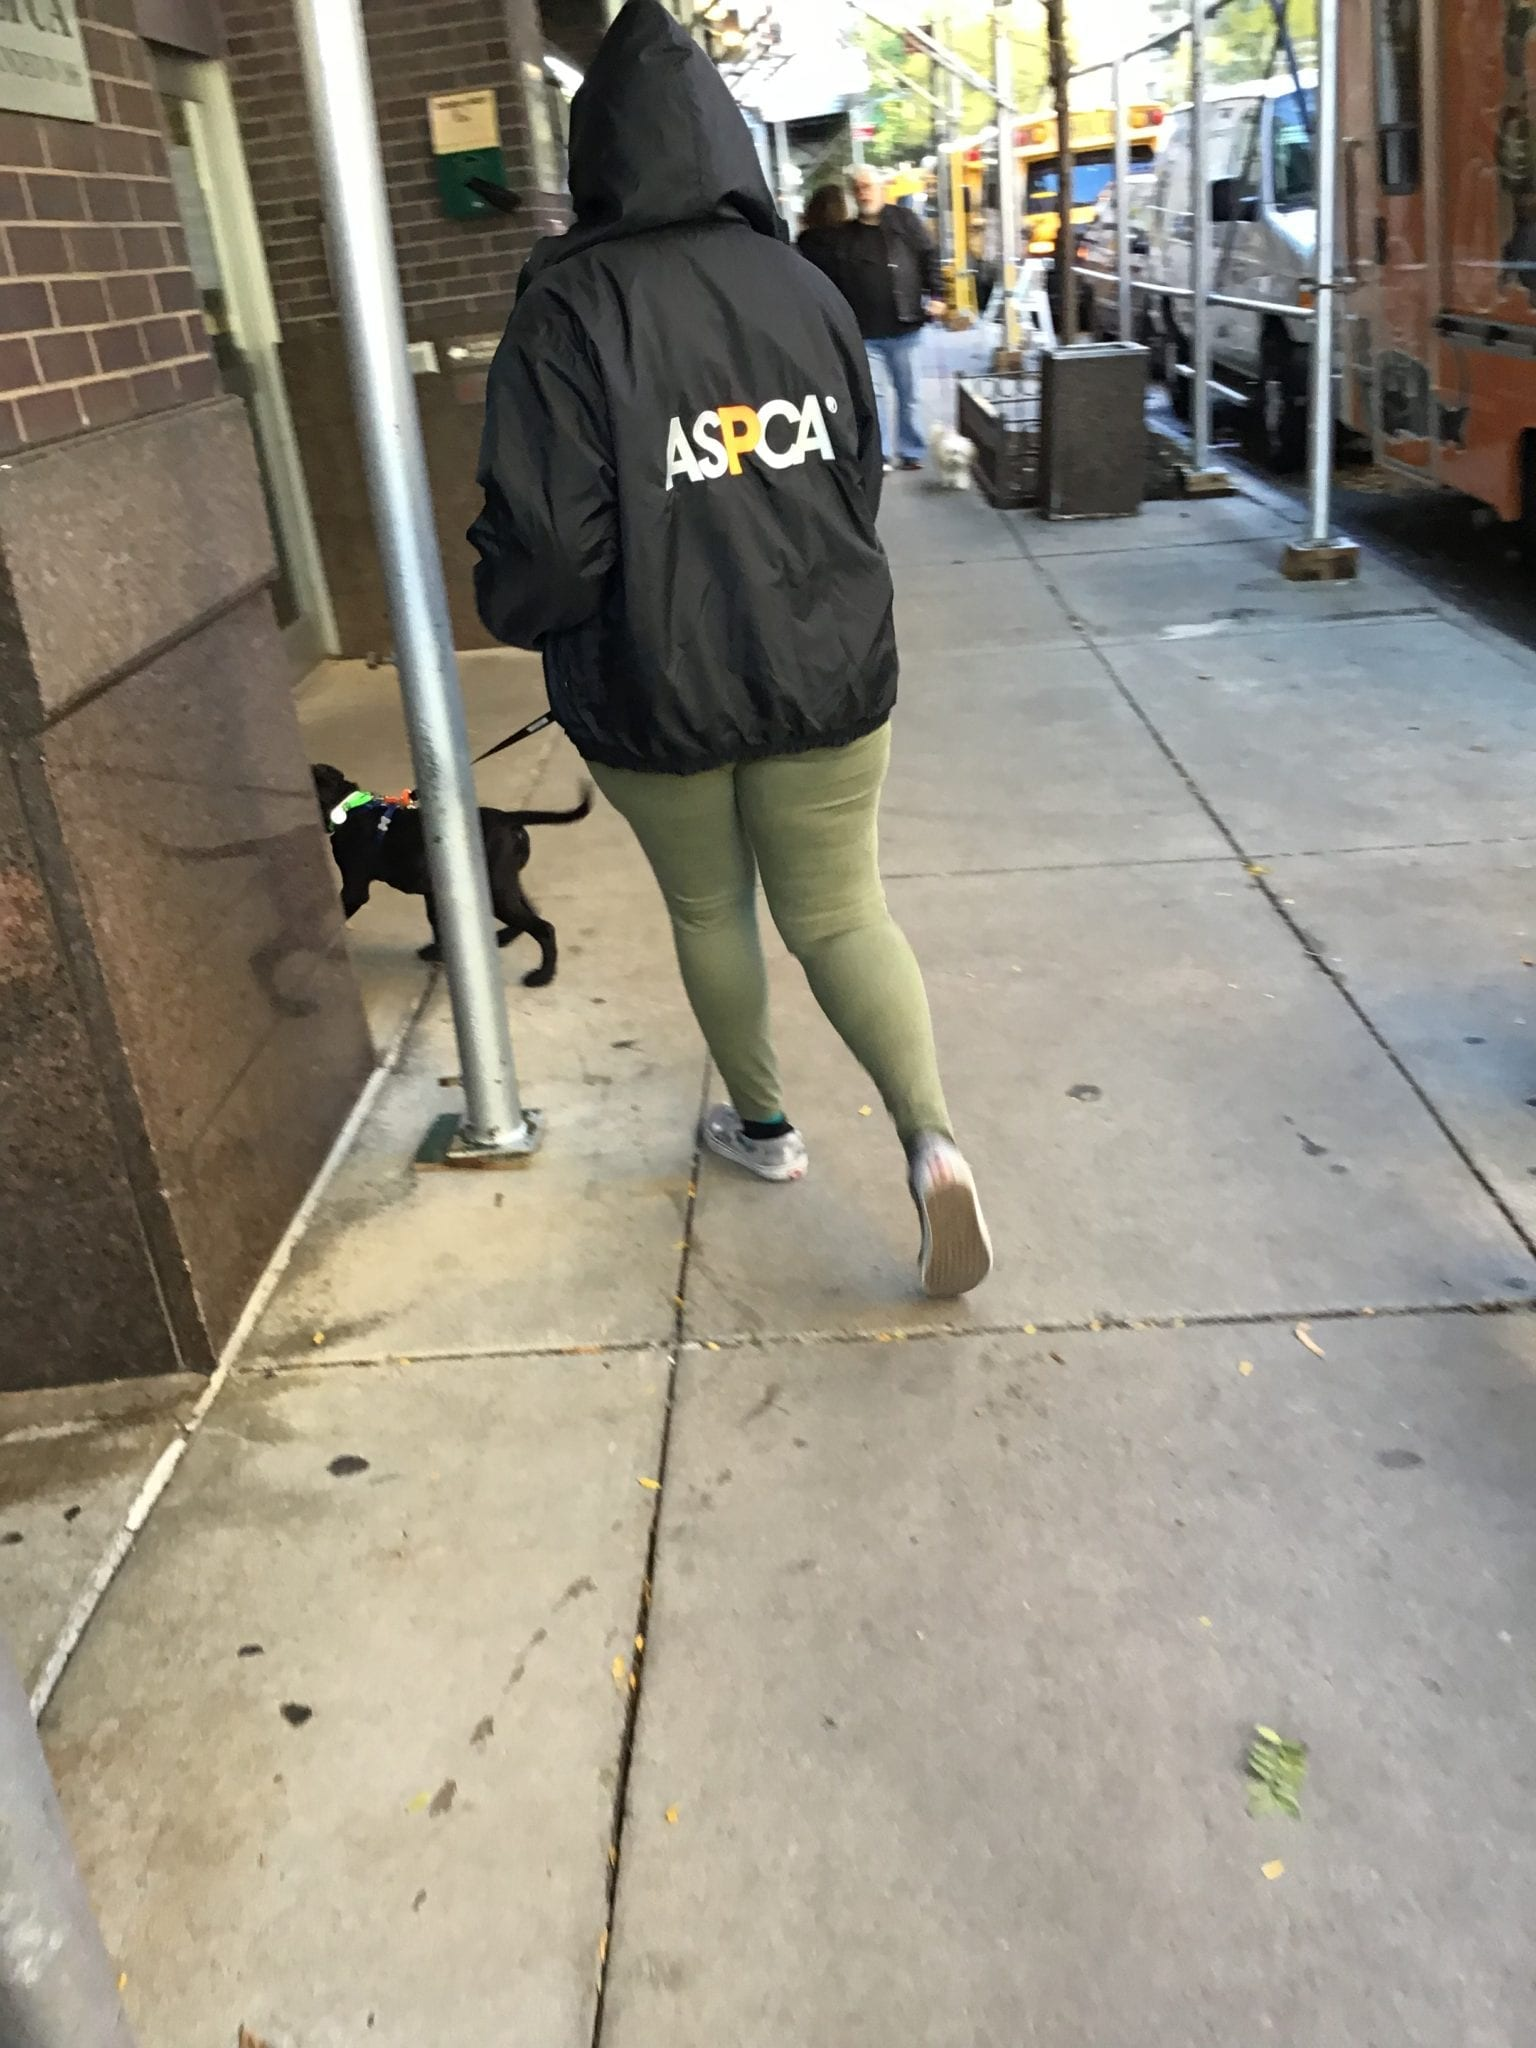 Dog coming back from a walk outside ASPCA Adoption center